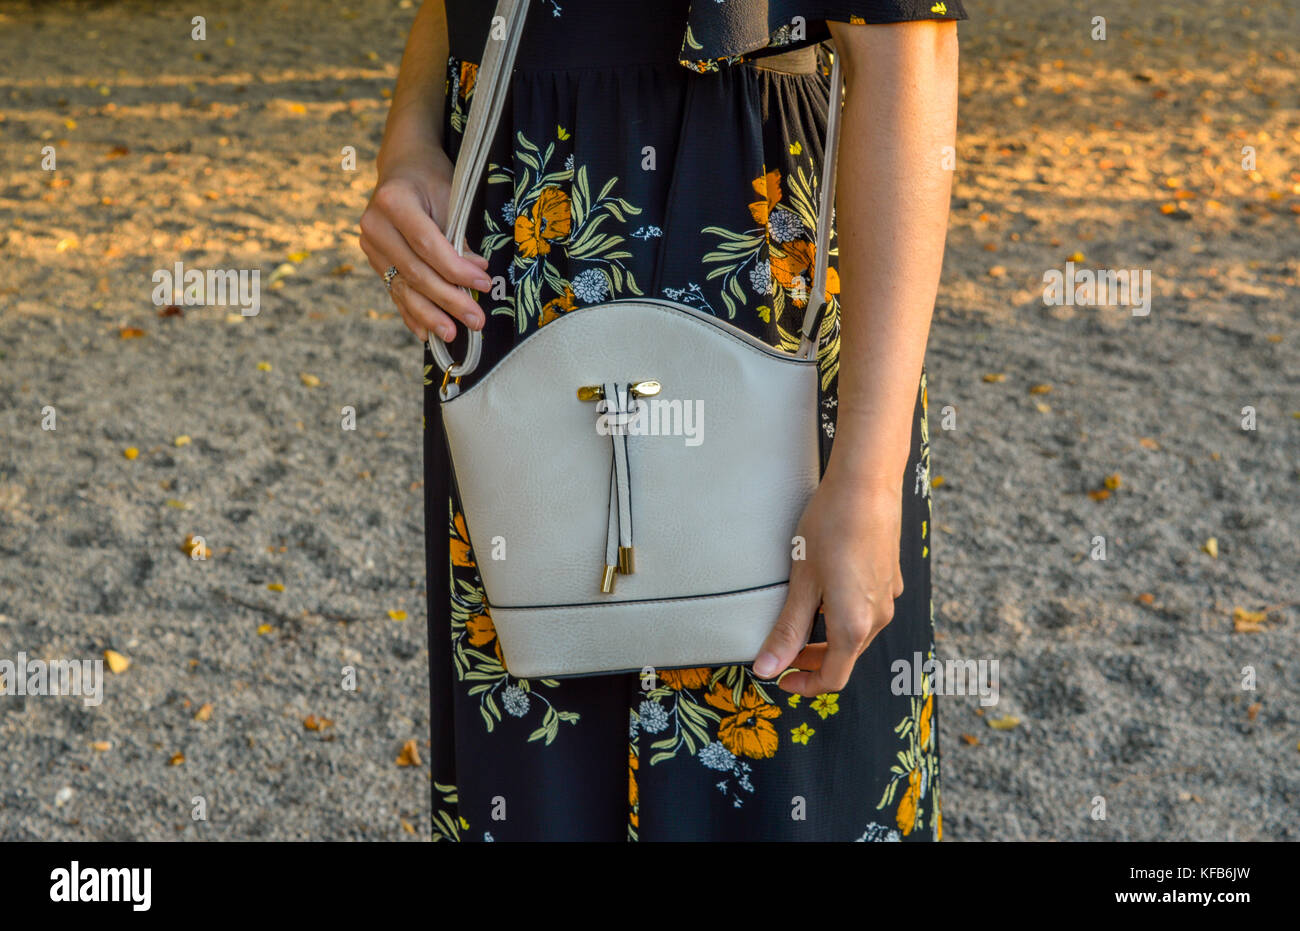 A young woman, wearing a floral dress, holding a mini bag - Stock Image